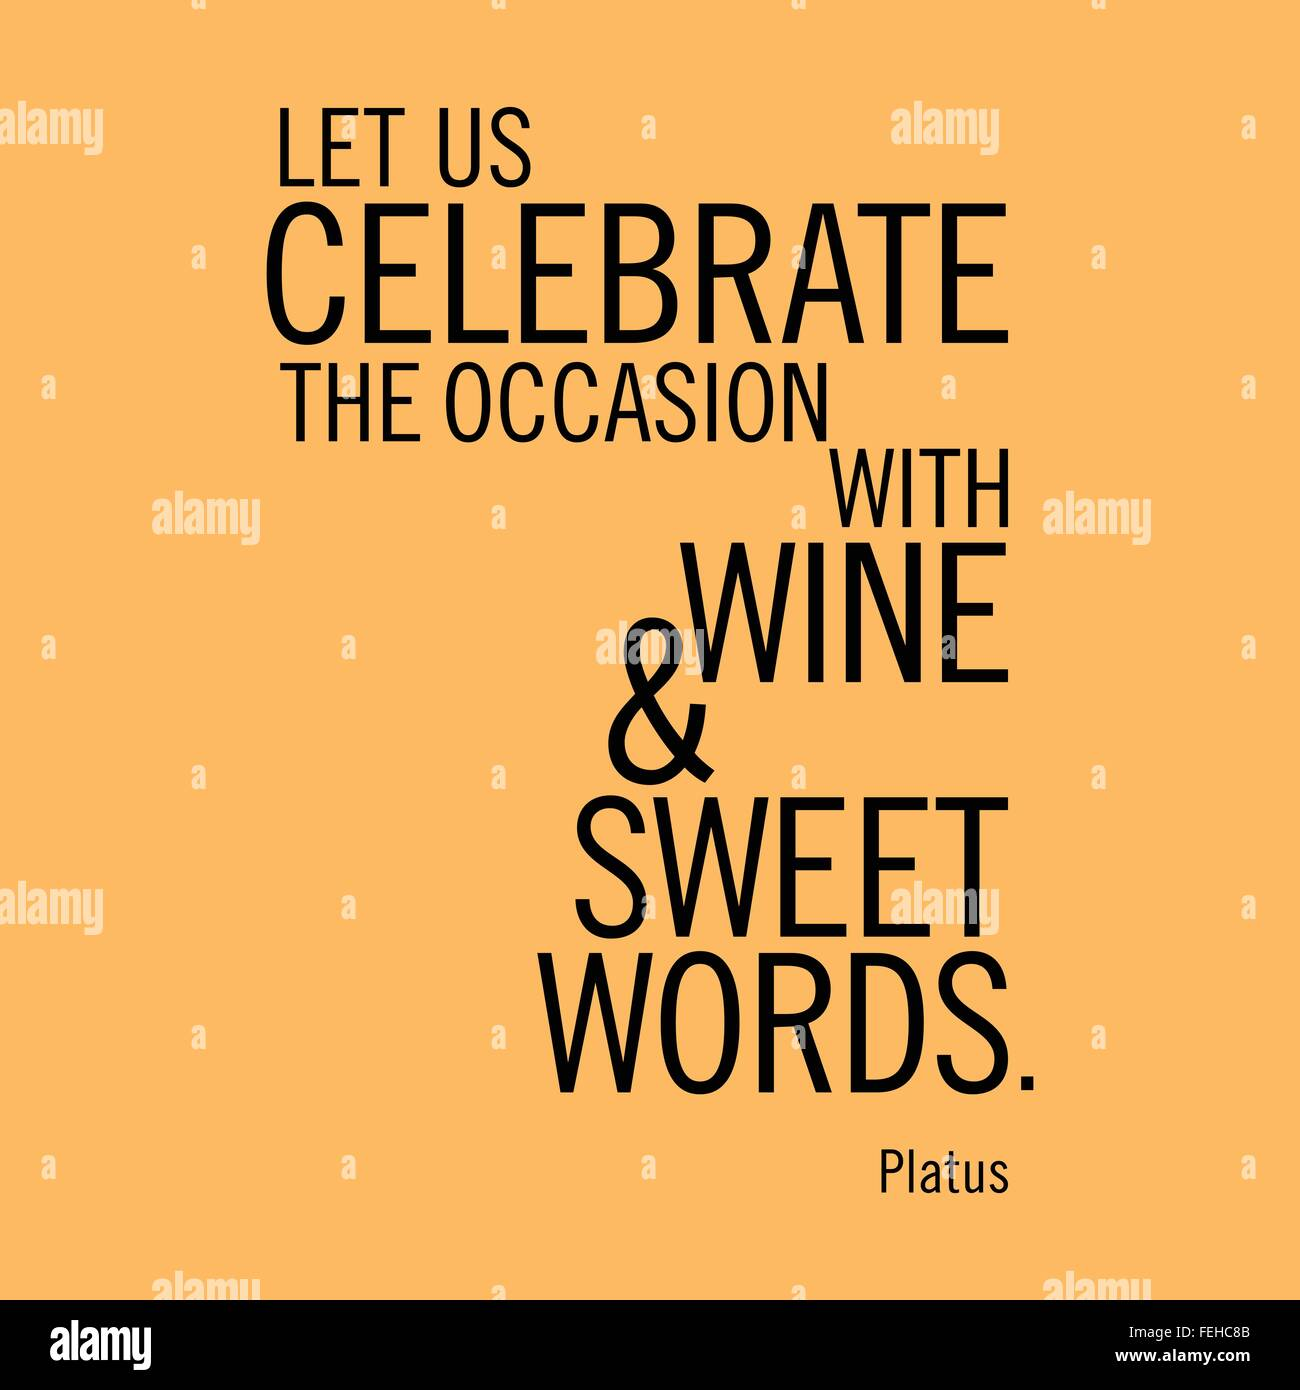 'Let us celebrate the occasion with wine and sweet words.' Platus - Stock Vector